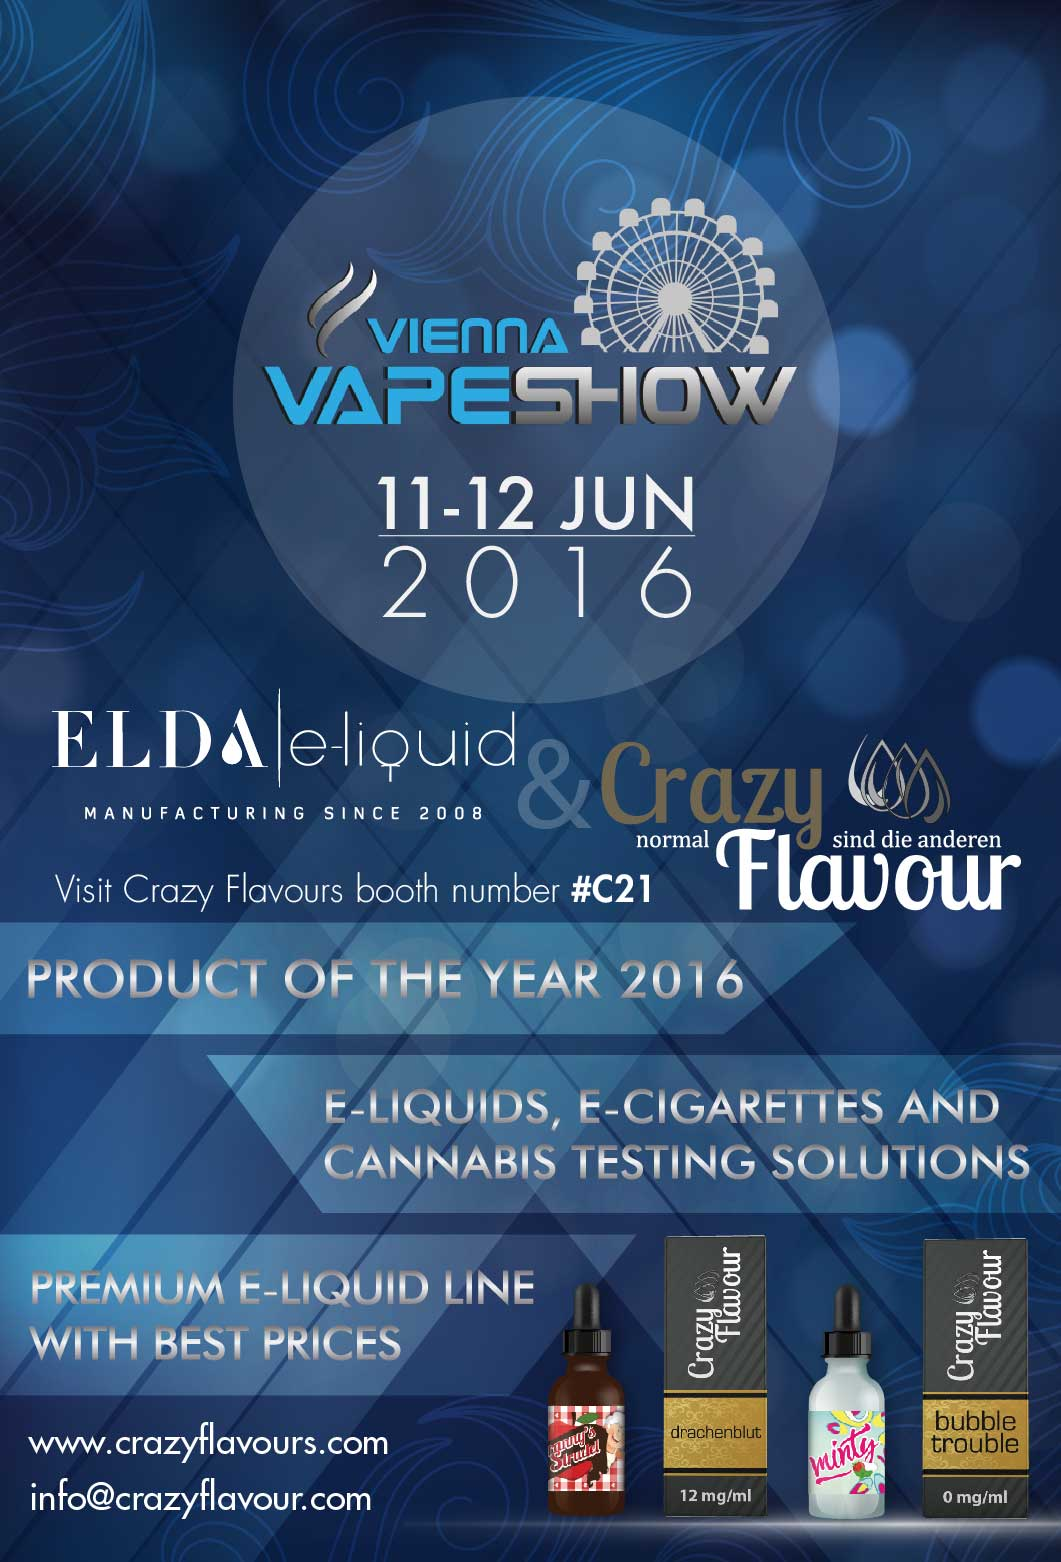 Visit us at Vienna Vape show 2016